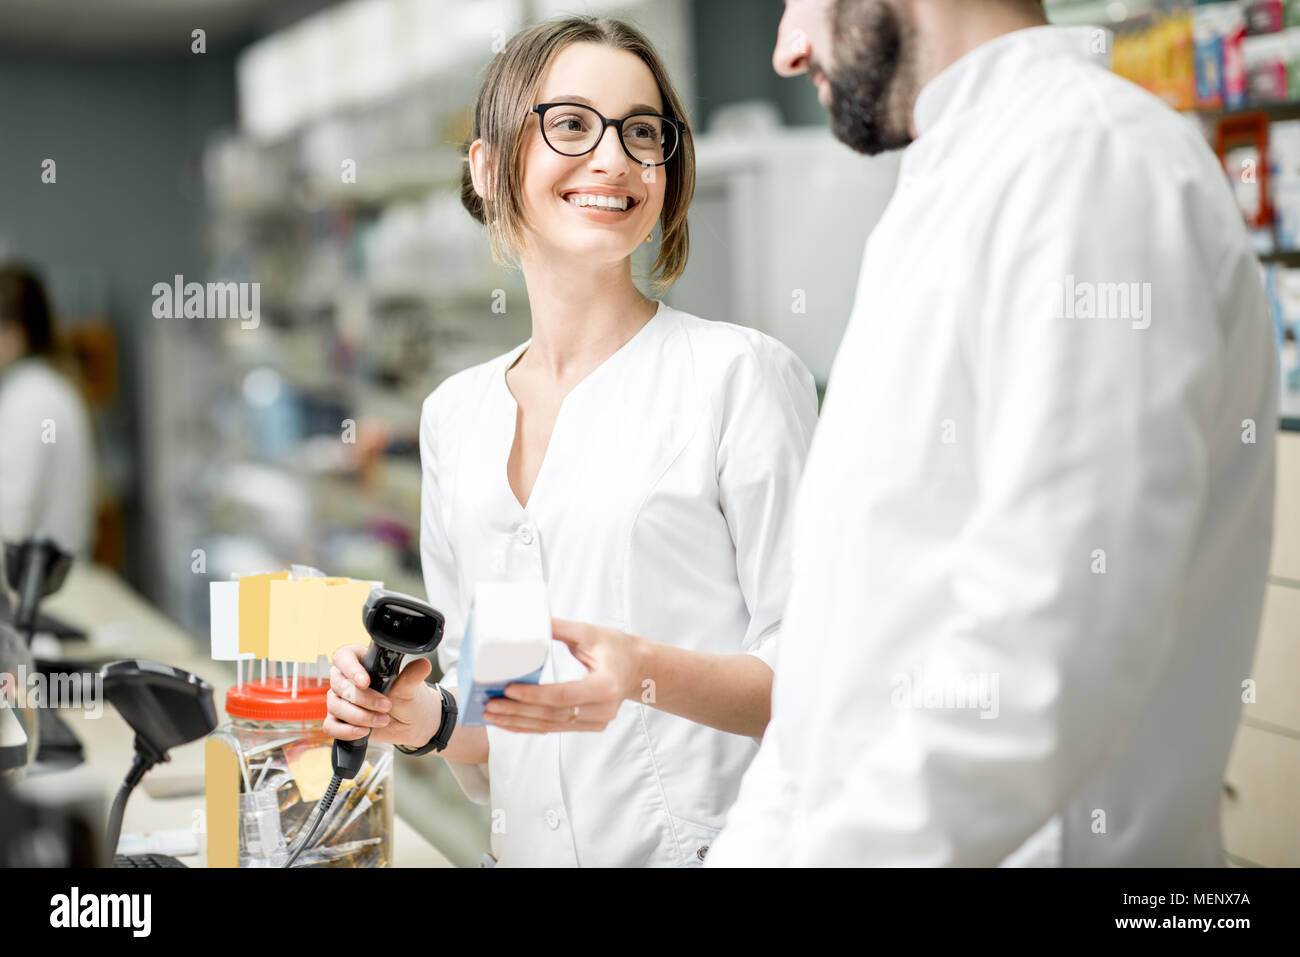 Pharmacists working in the pharmacy store Stock Photo